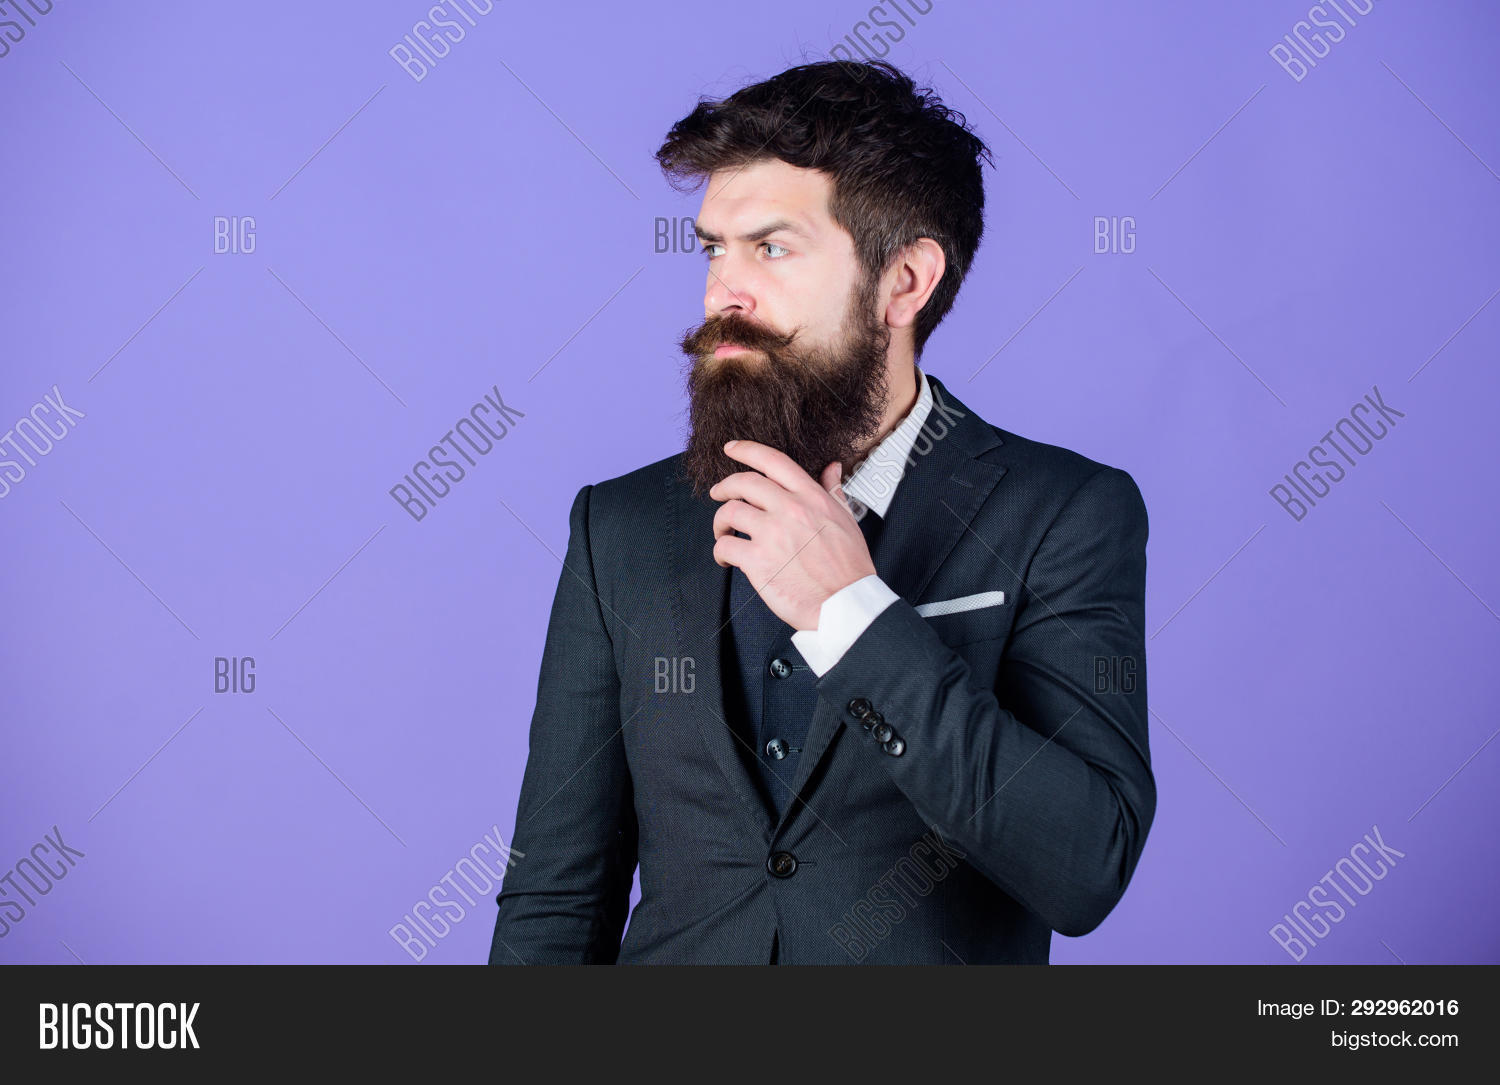 ccff2feb Fashion Concept. Guy Wear Formal Outfit. Impeccable Style. Businessman  Fashionable Outfit Stand Viol